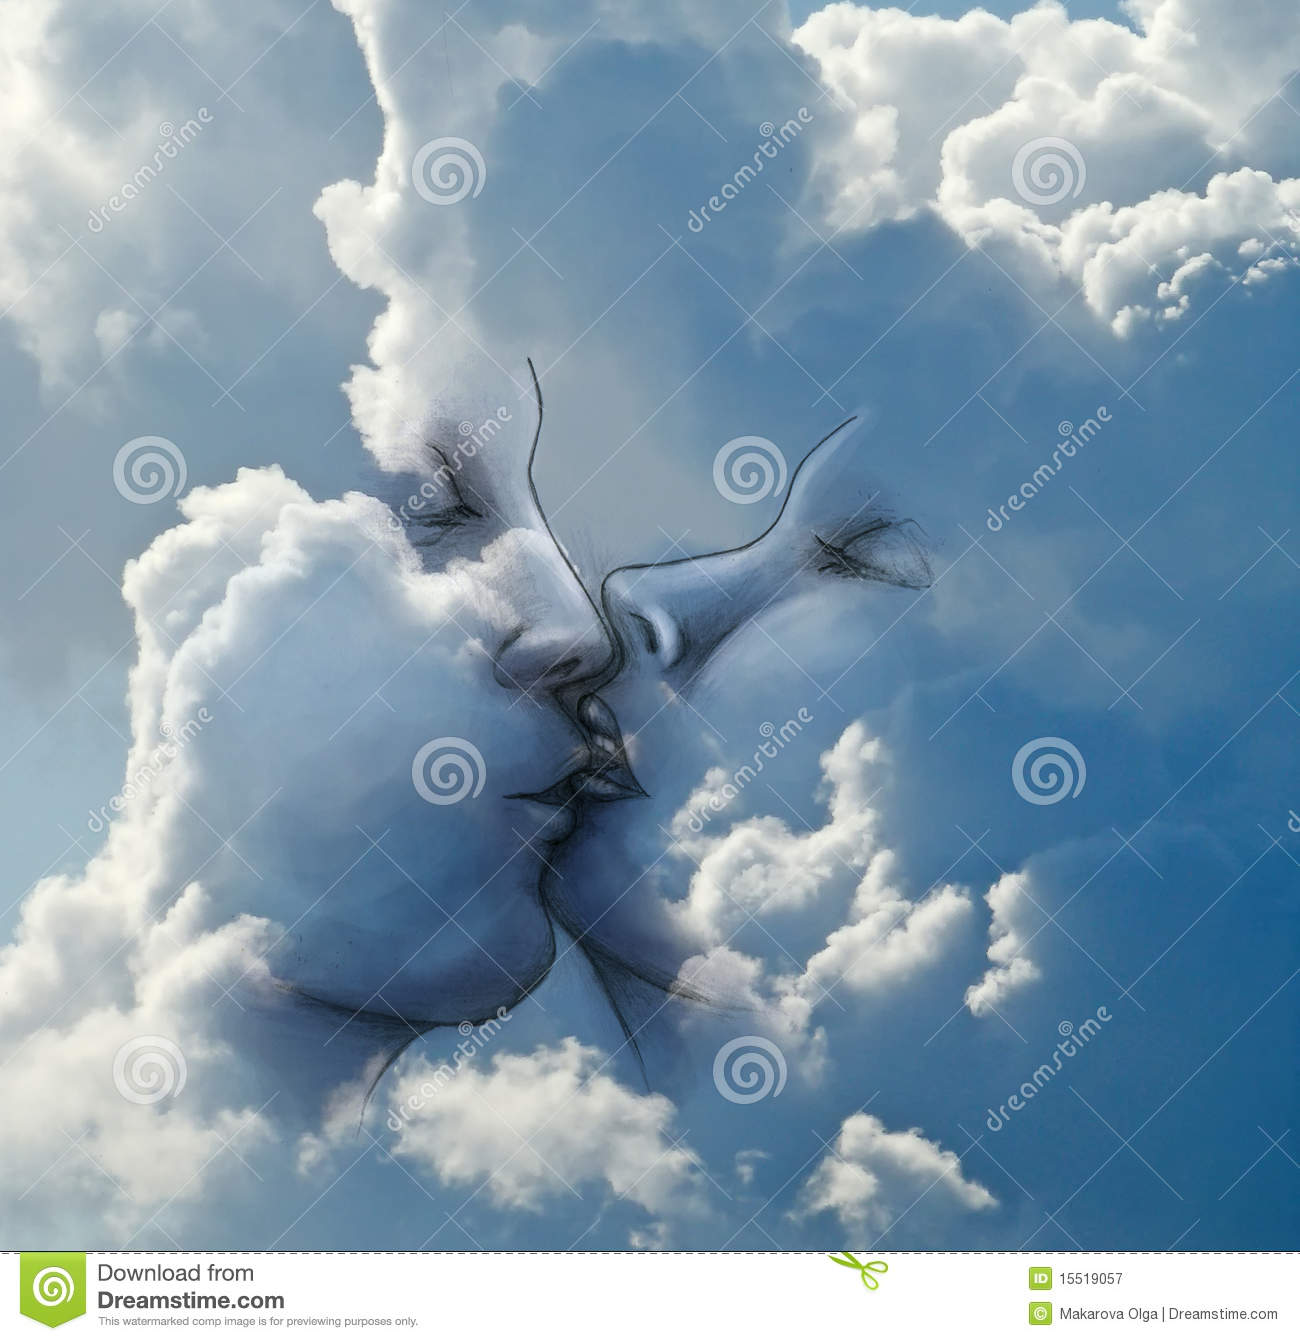 Eagle Nebula Hd Wallpaper Kiss In The Clouds Royalty Free Stock Photography Image